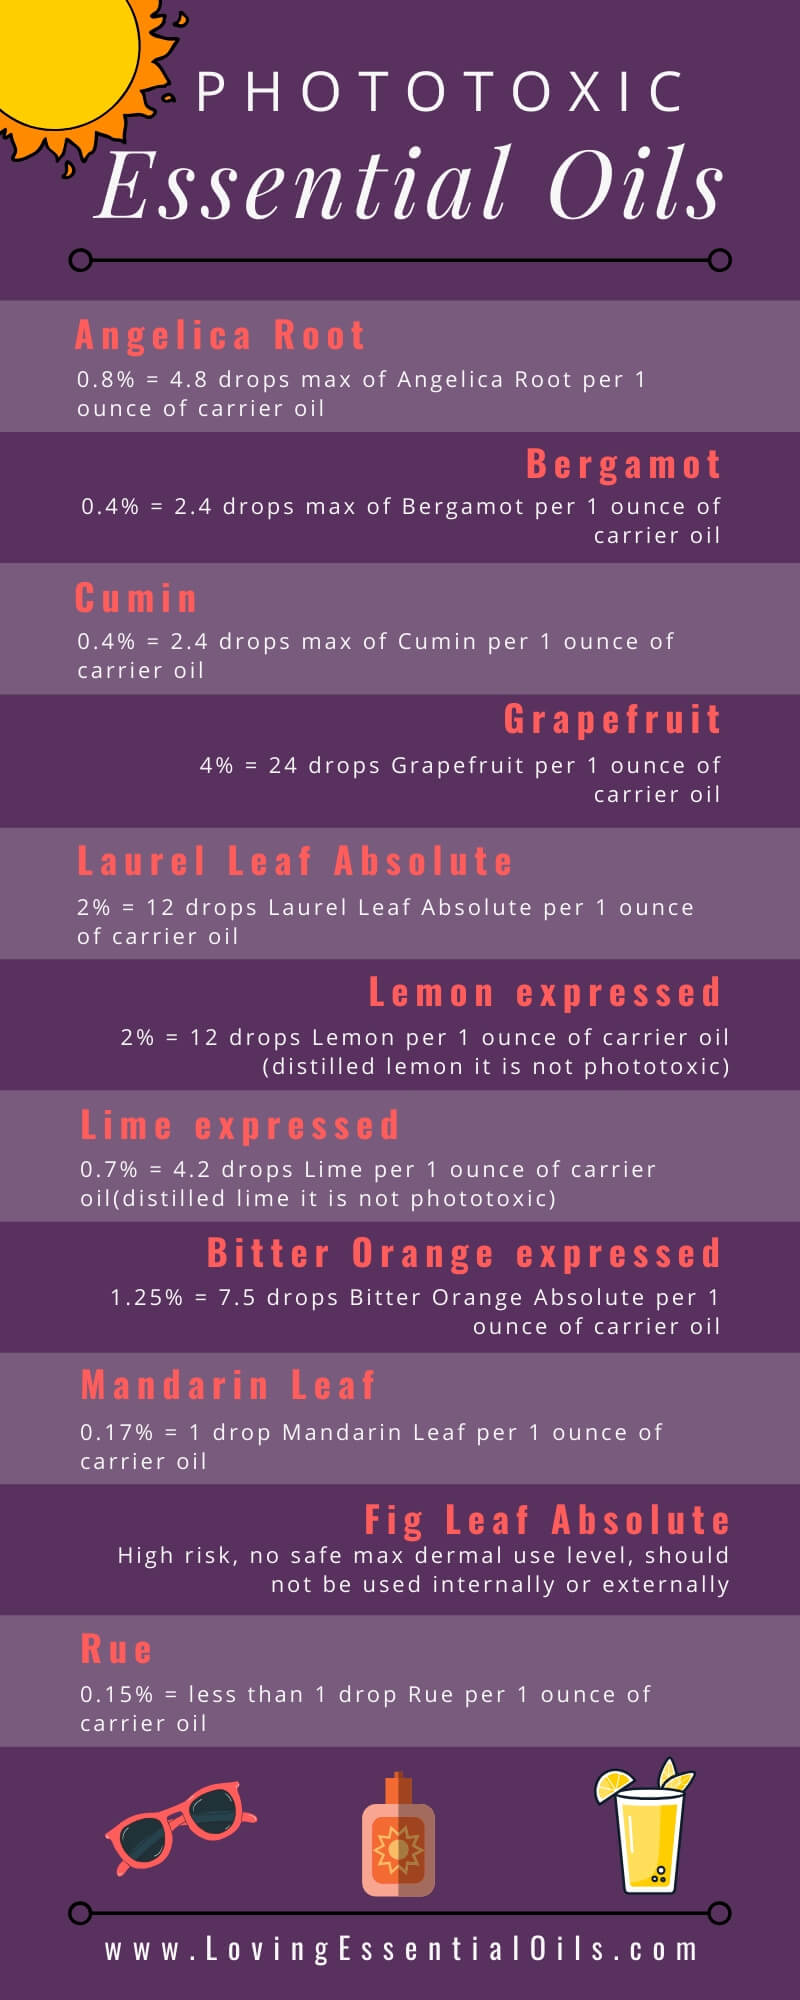 Phototoxic Essential Oils infographic by Loving Essential Oils - Learn how to safely use essential oils in the sun